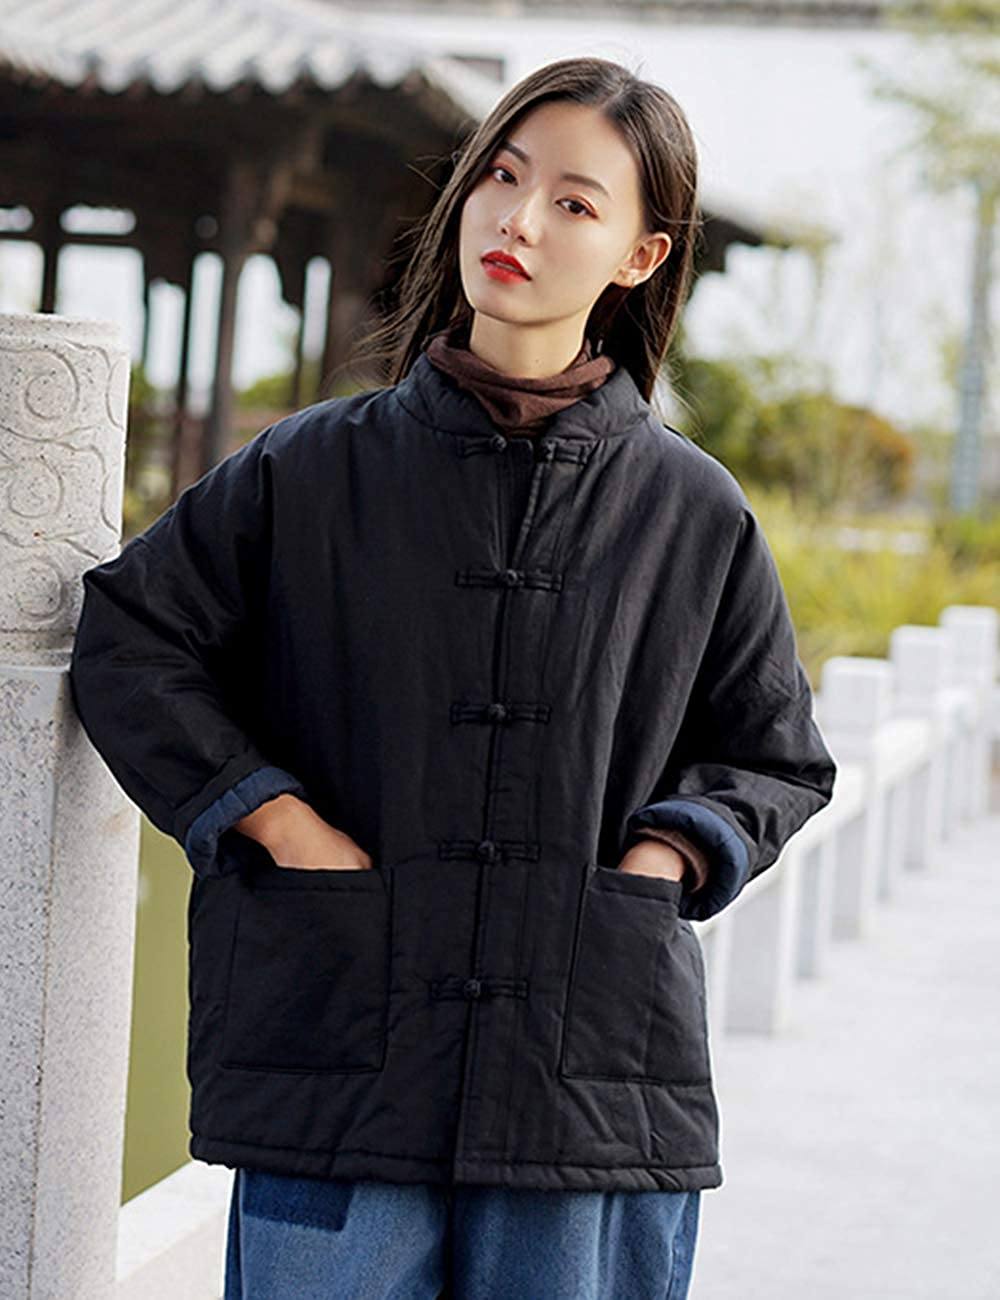 LZJN Womens Quilted Jacket Coat Chinese Tang Suit Style Cotton Linen Coat with Pockets